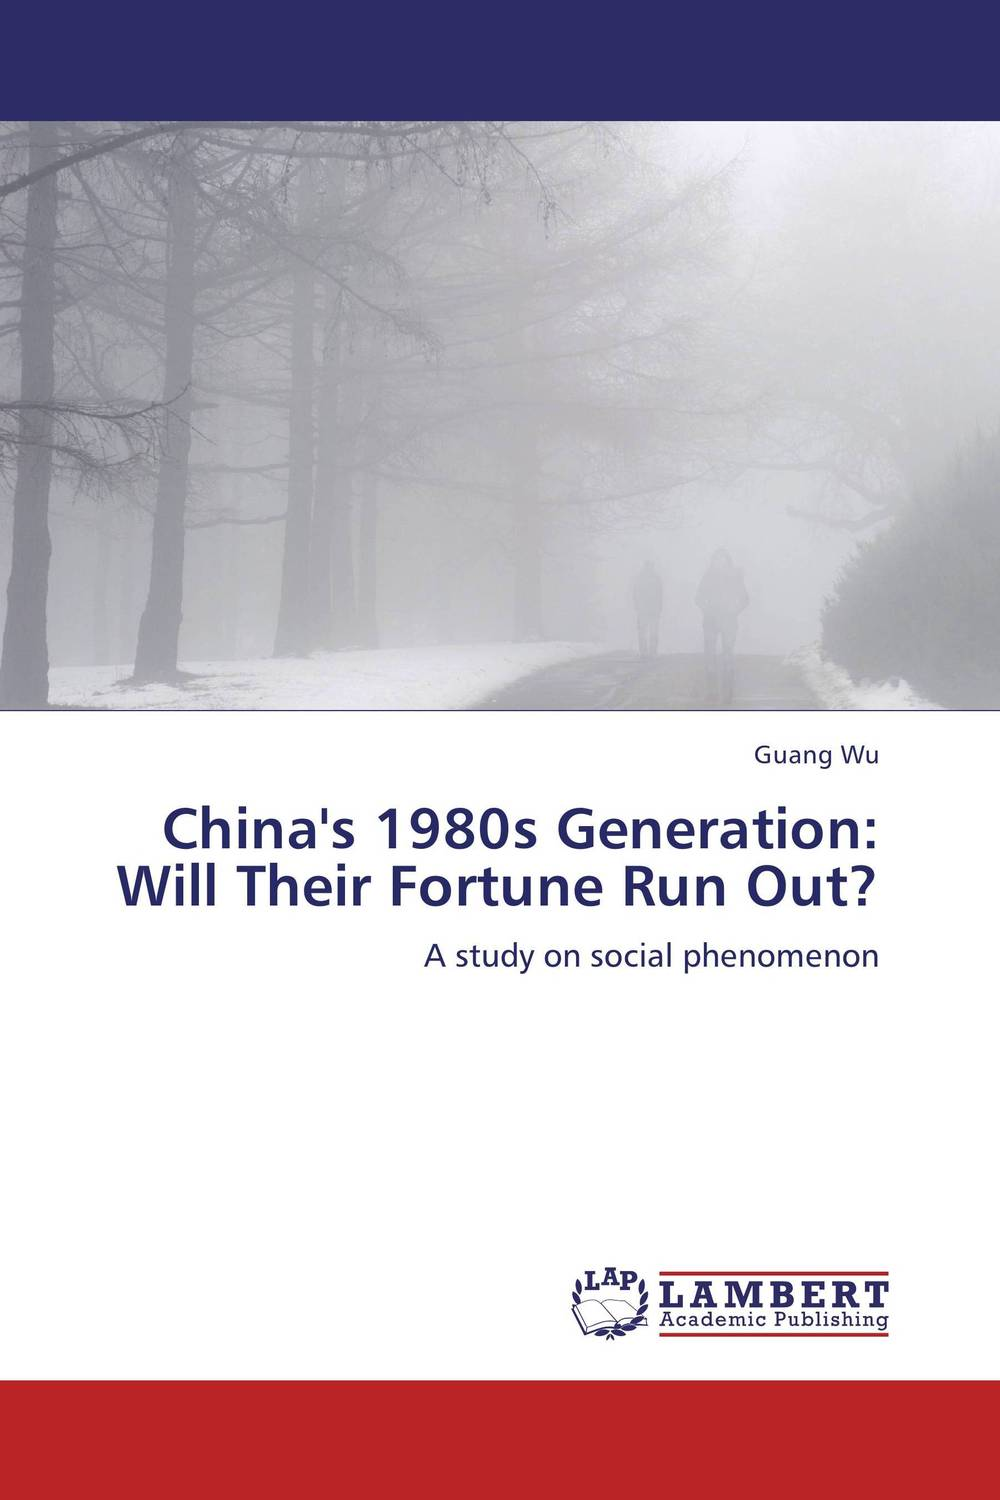 China's 1980s Generation: Will Their Fortune Run Out? presidential nominee will address a gathering